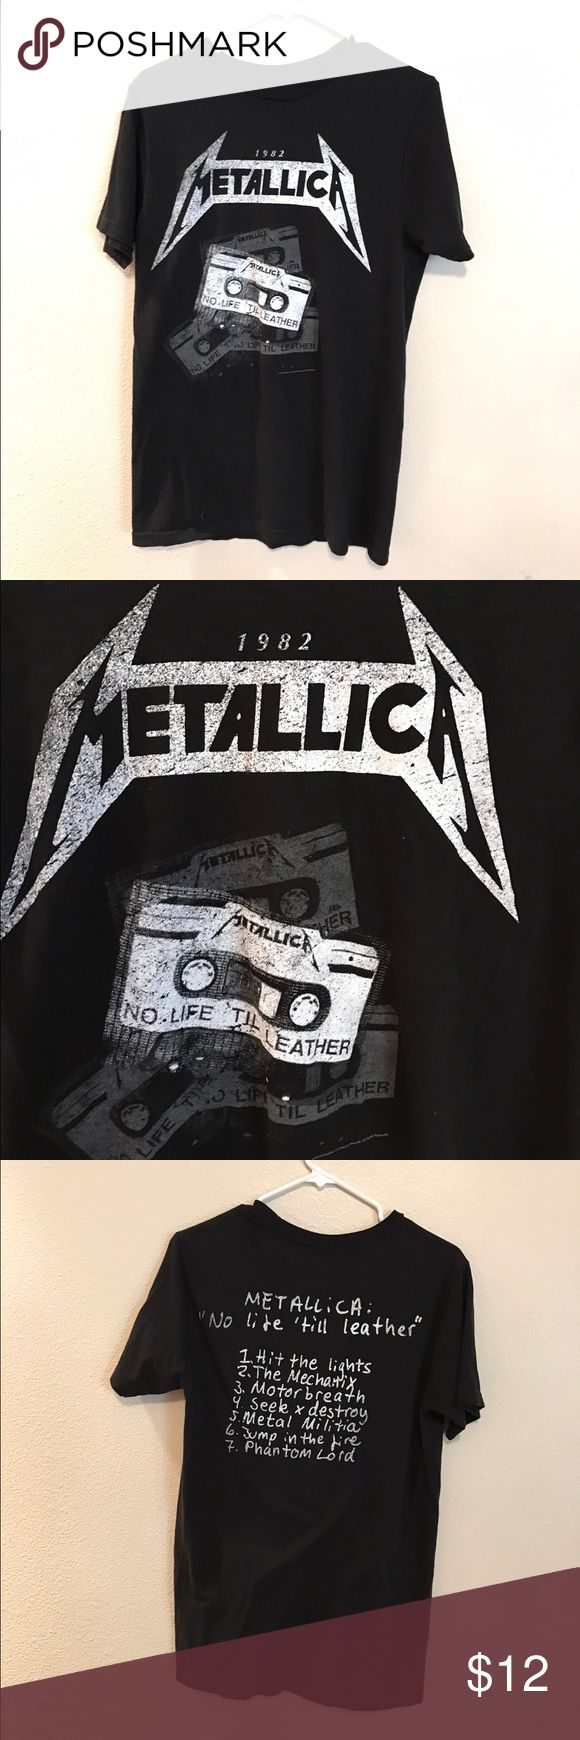 Metallica Tshirt Vintage Metallica Tour Tshirt standard fit 100% cotton Shirts Tees - Short Sleeve